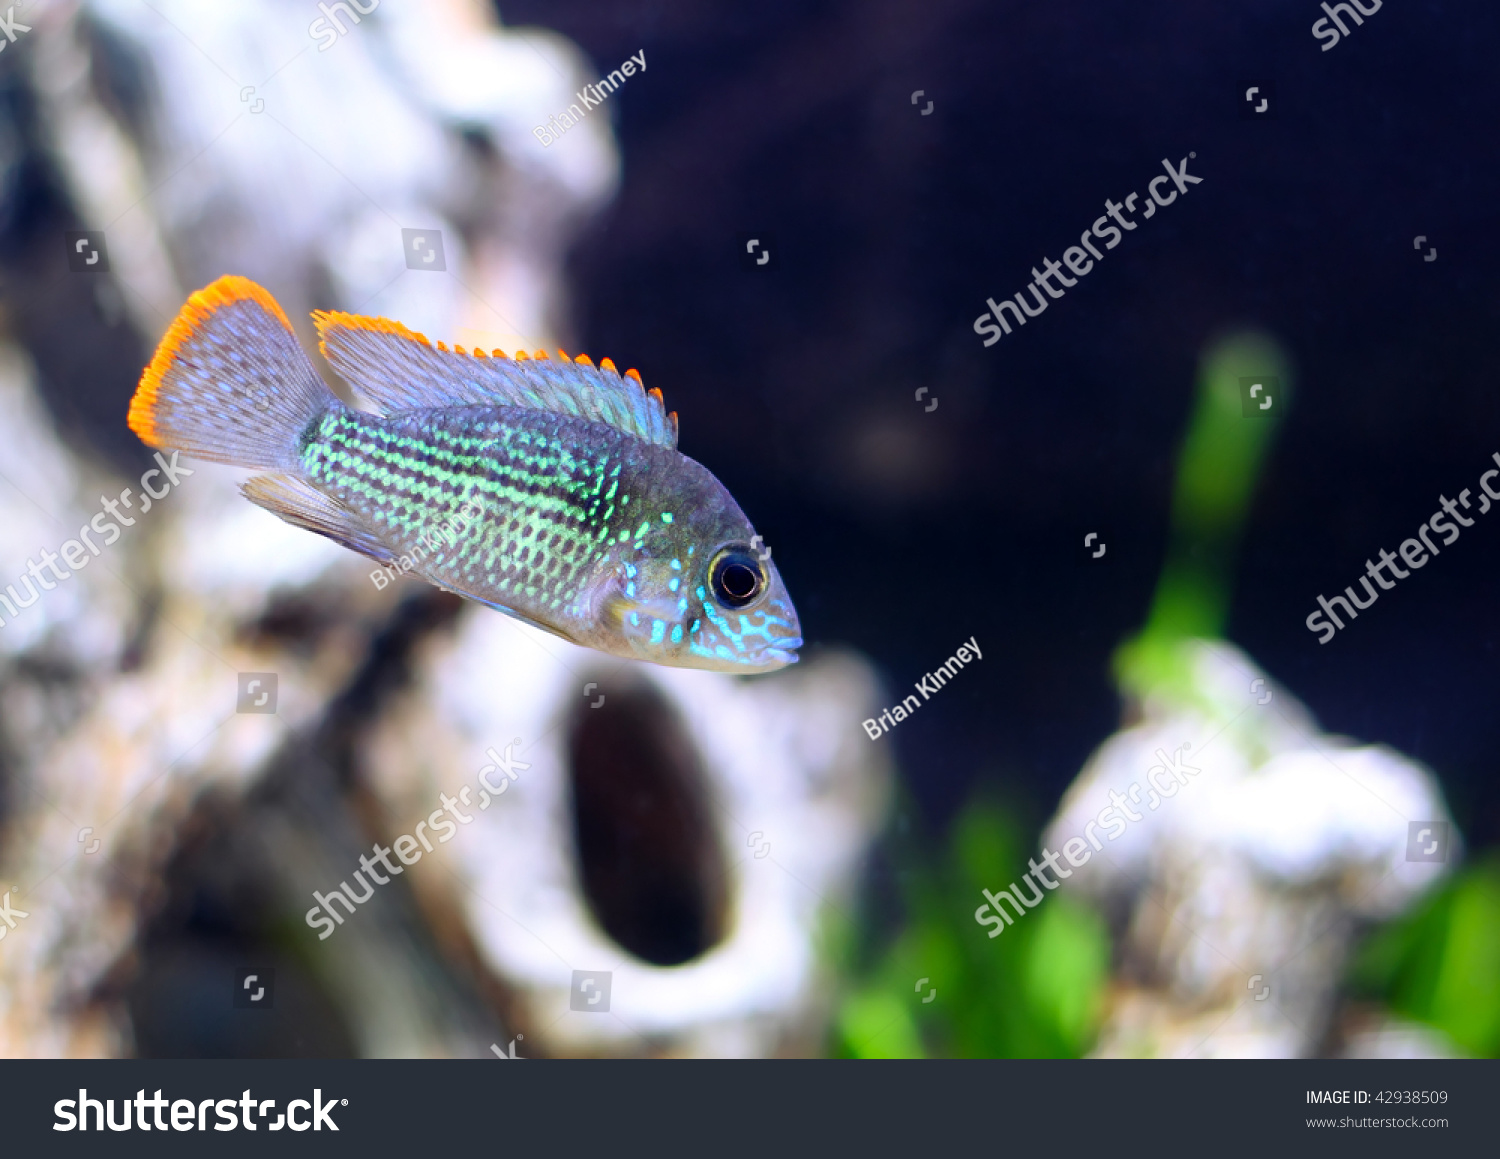 Fish for asian aquarium - Save To A Lightbox